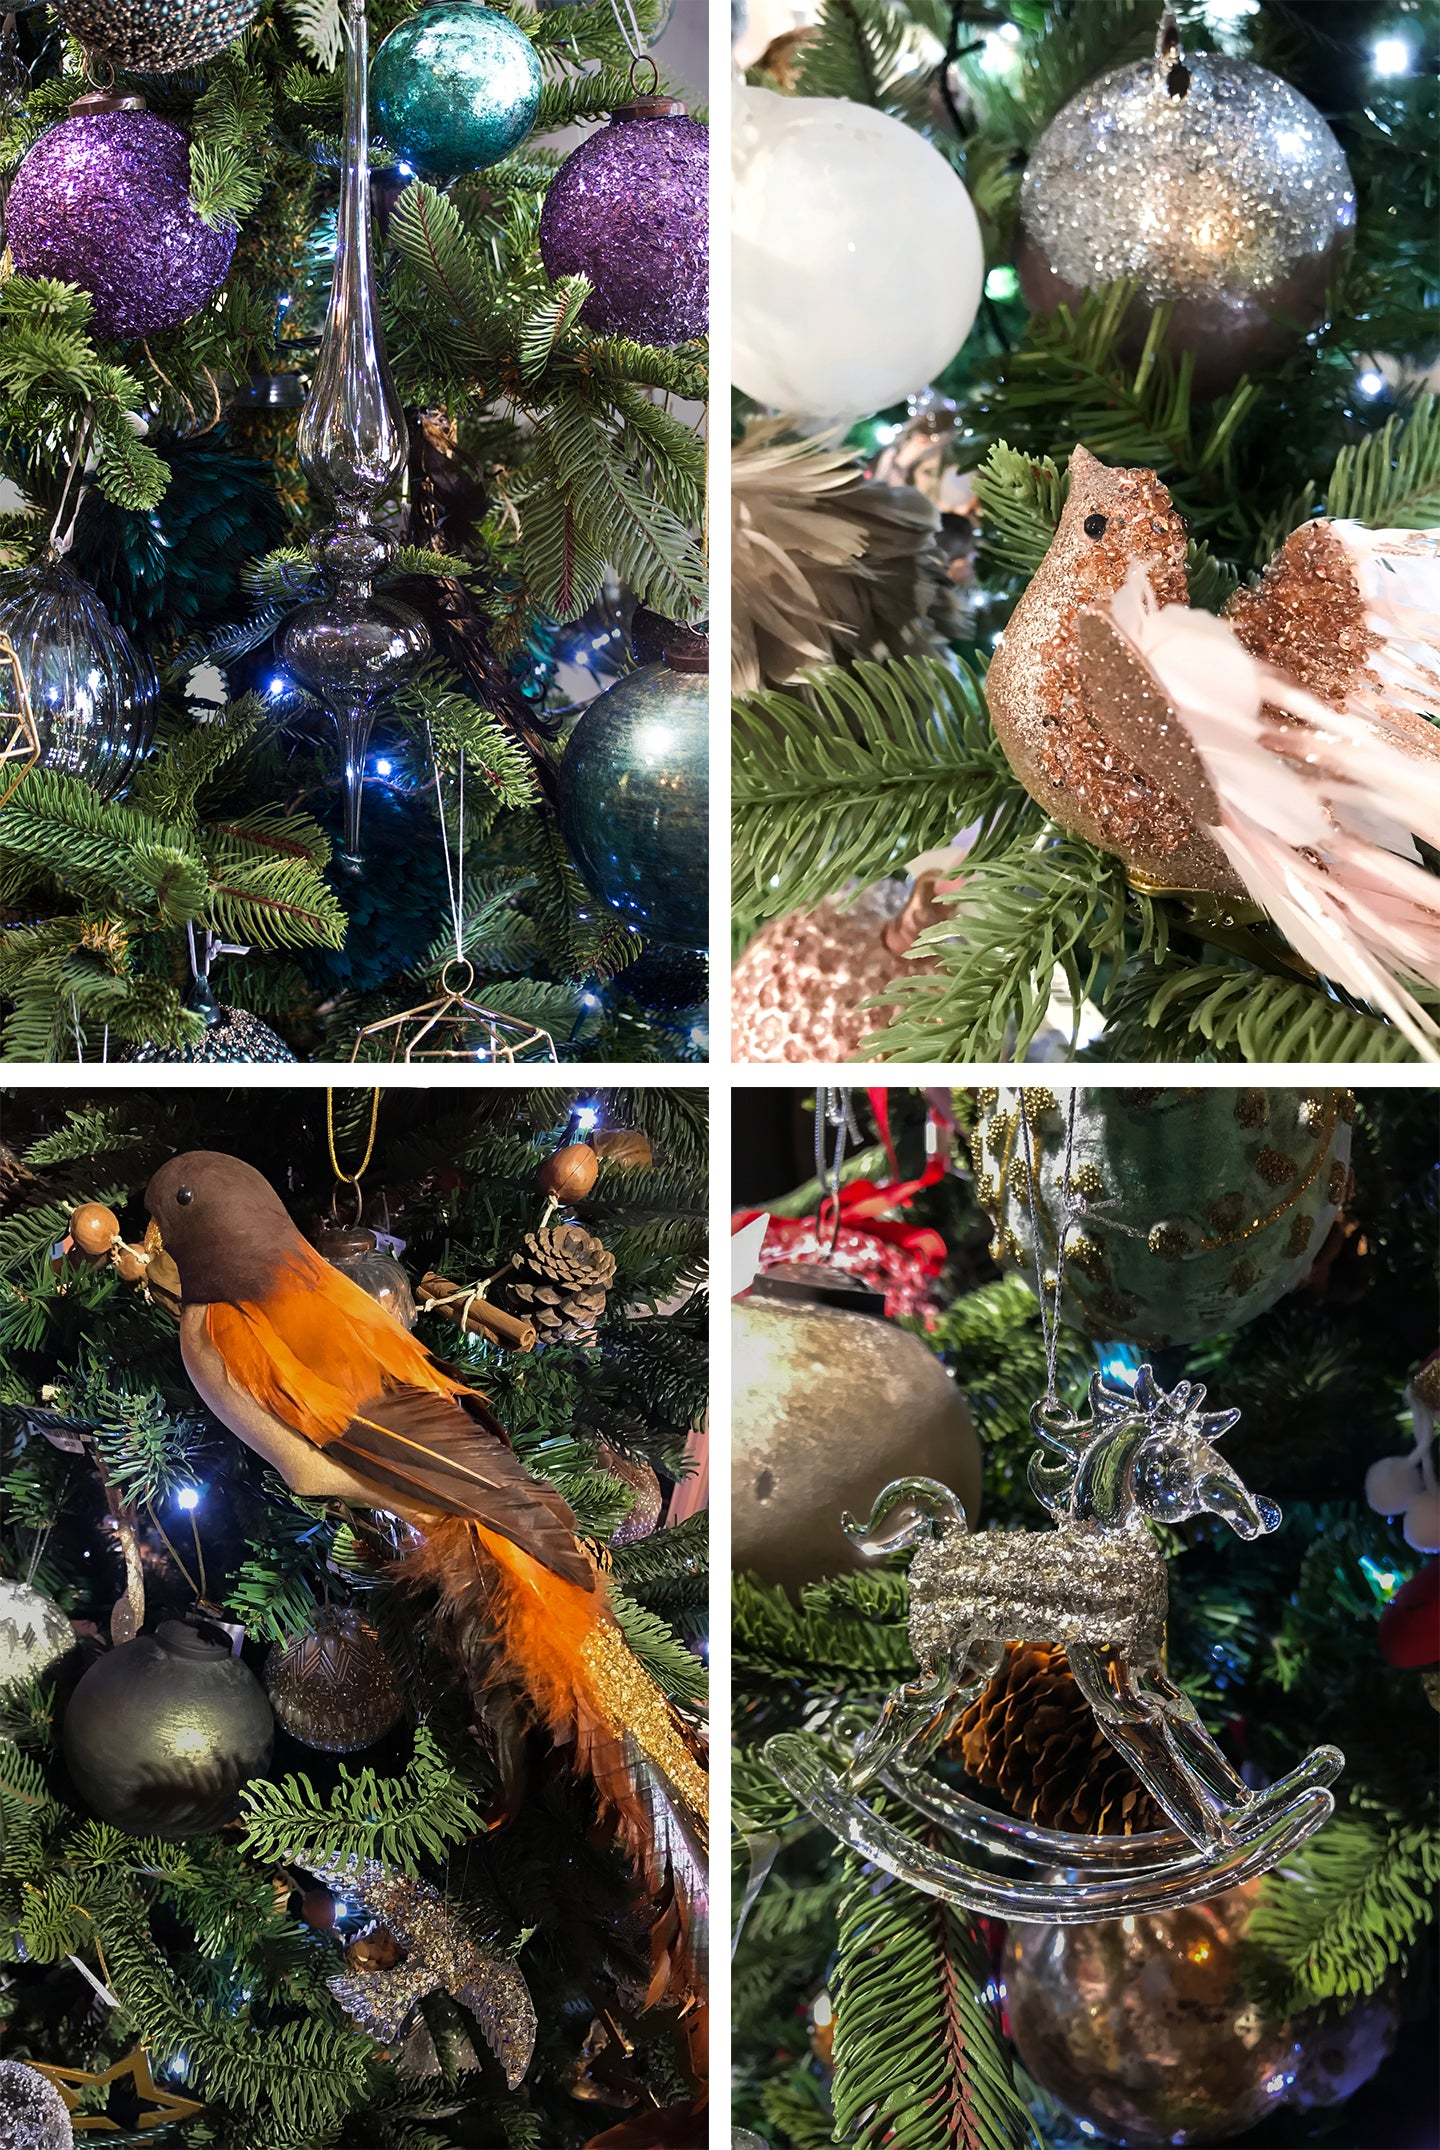 b010683a7159b This year at Colony, we have four different Christmas themes and we had  such fun decorating our store and windows to inspire everyone. Come and  visit us to ...